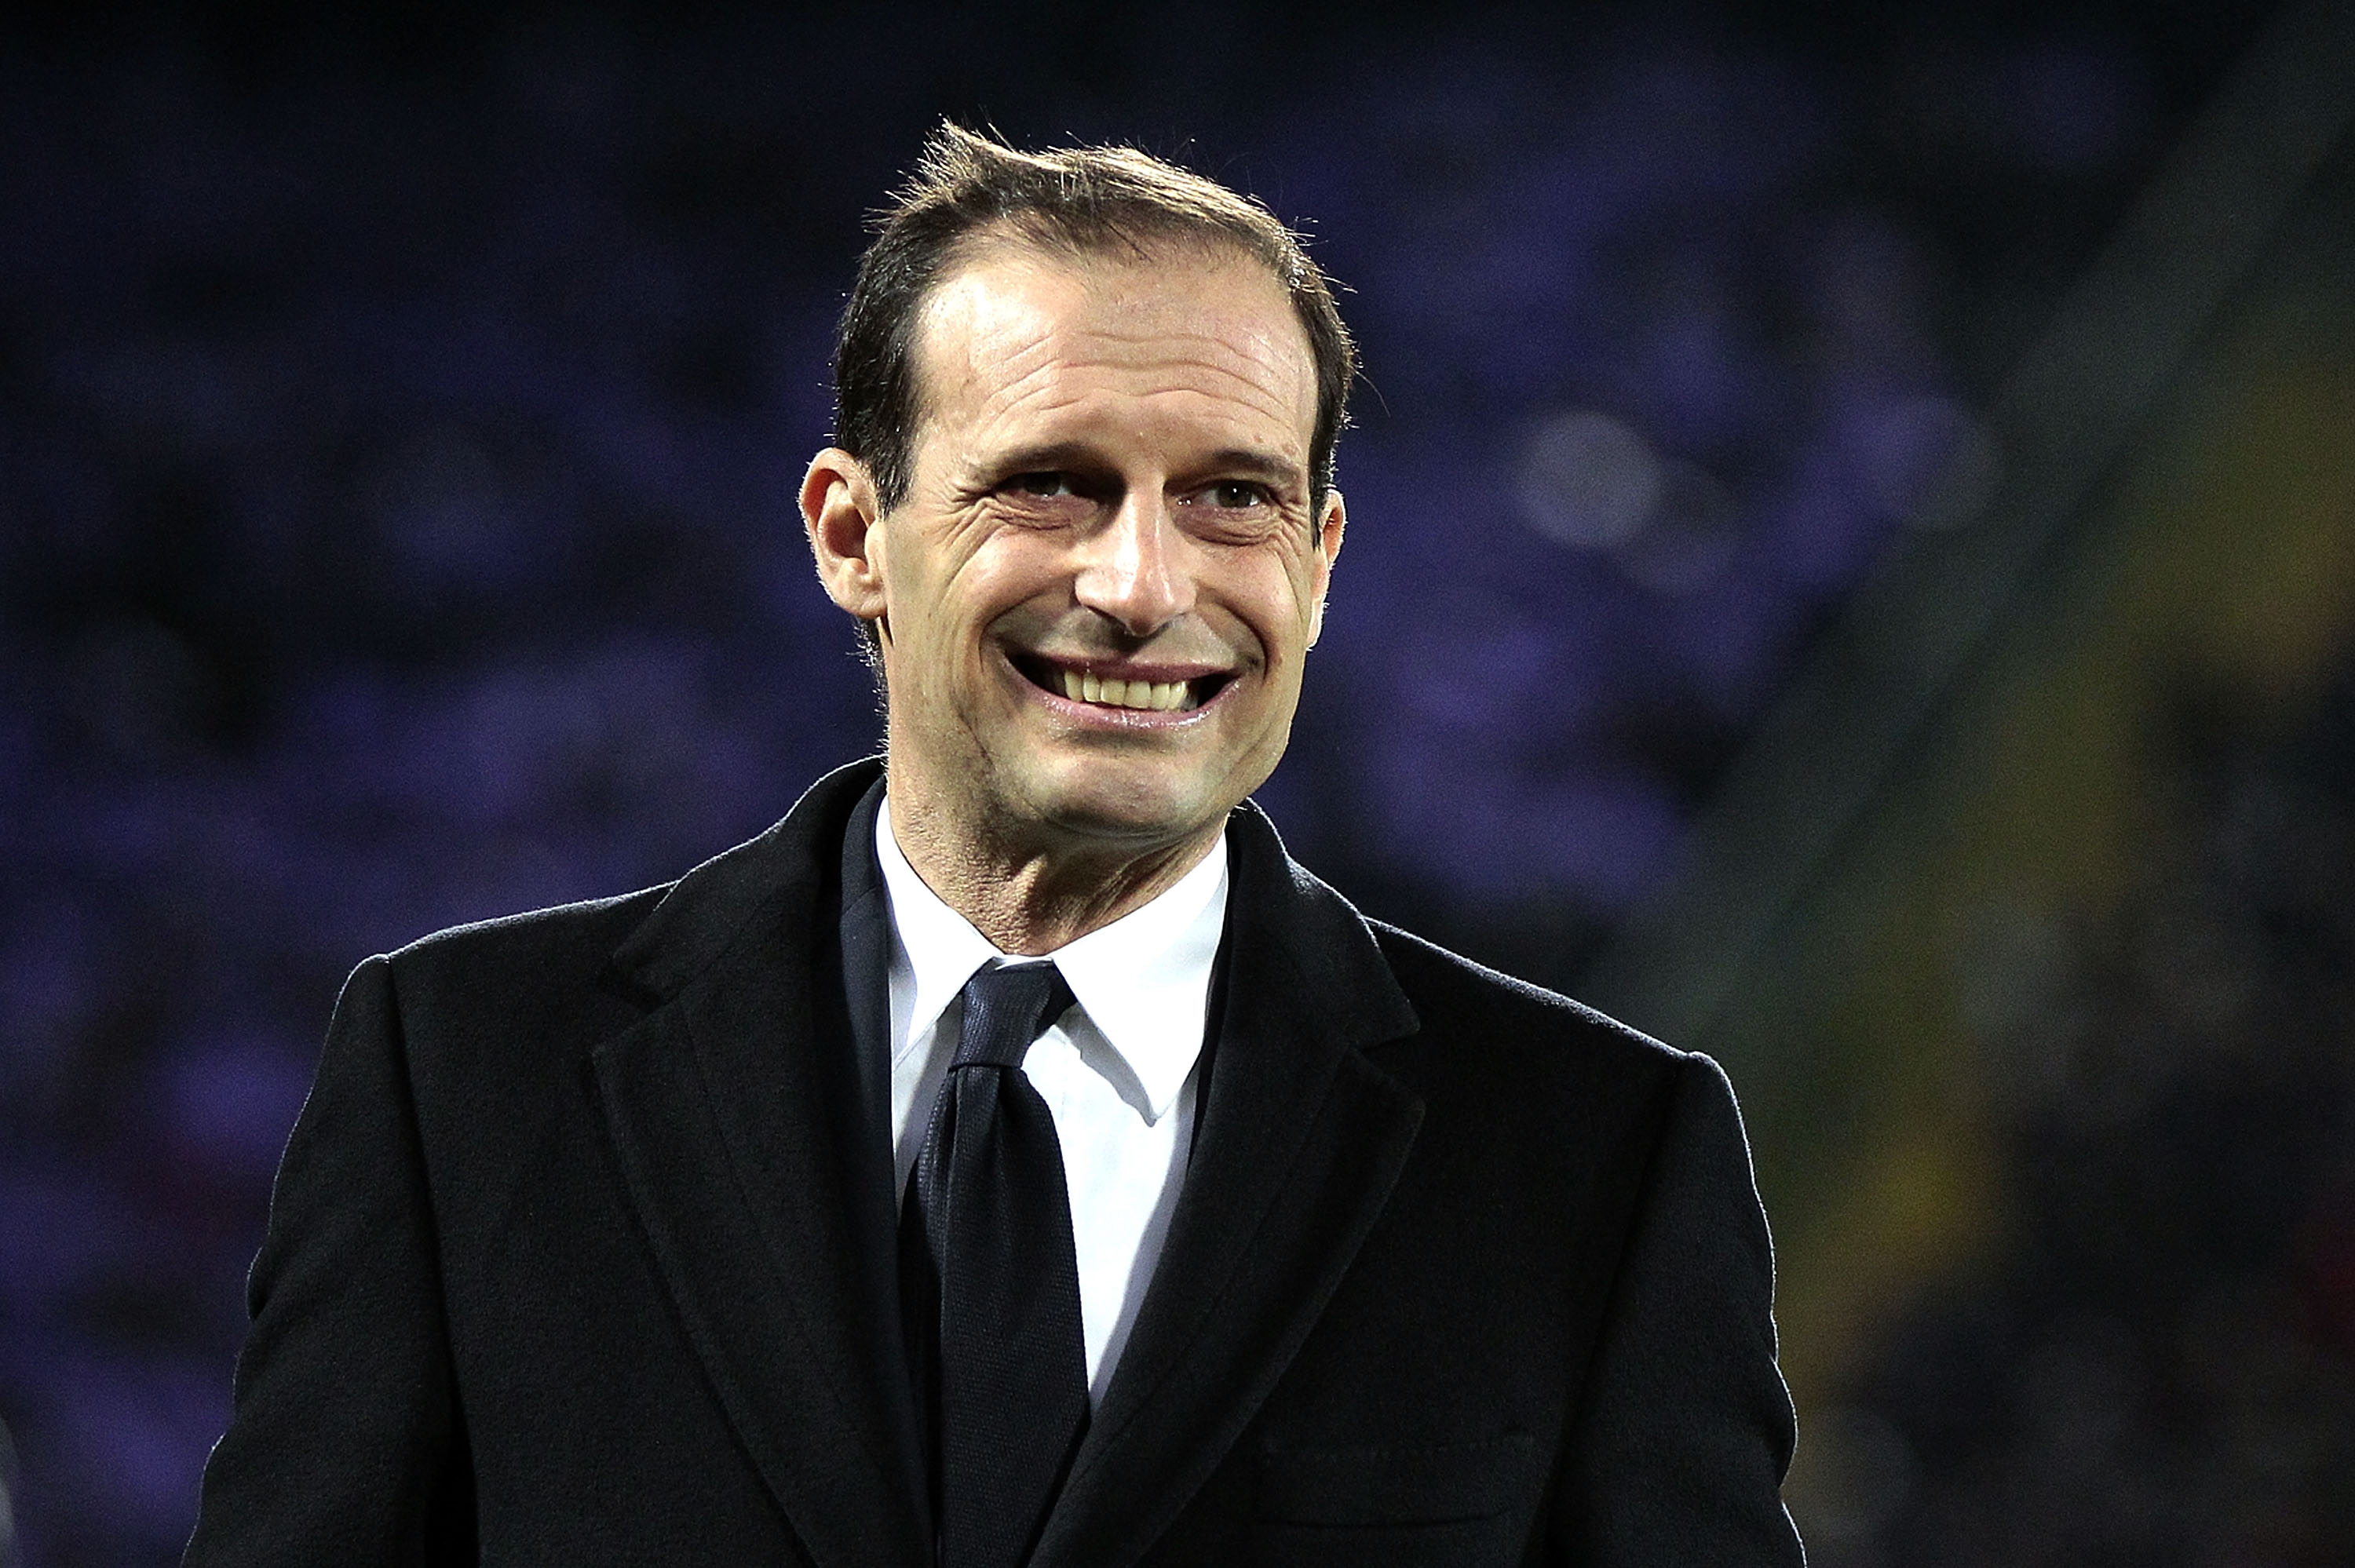 FLORENCE, ITALY - JANUARY 15: Massimiliano Allegri head coach of Juventus FC reacts during the Serie A match between ACF Fiorentina and Juventus FC at Stadio Artemio Franchi on January 15, 2017 in Florence, Italy.  (Photo by Gabriele Maltinti/Getty Images)